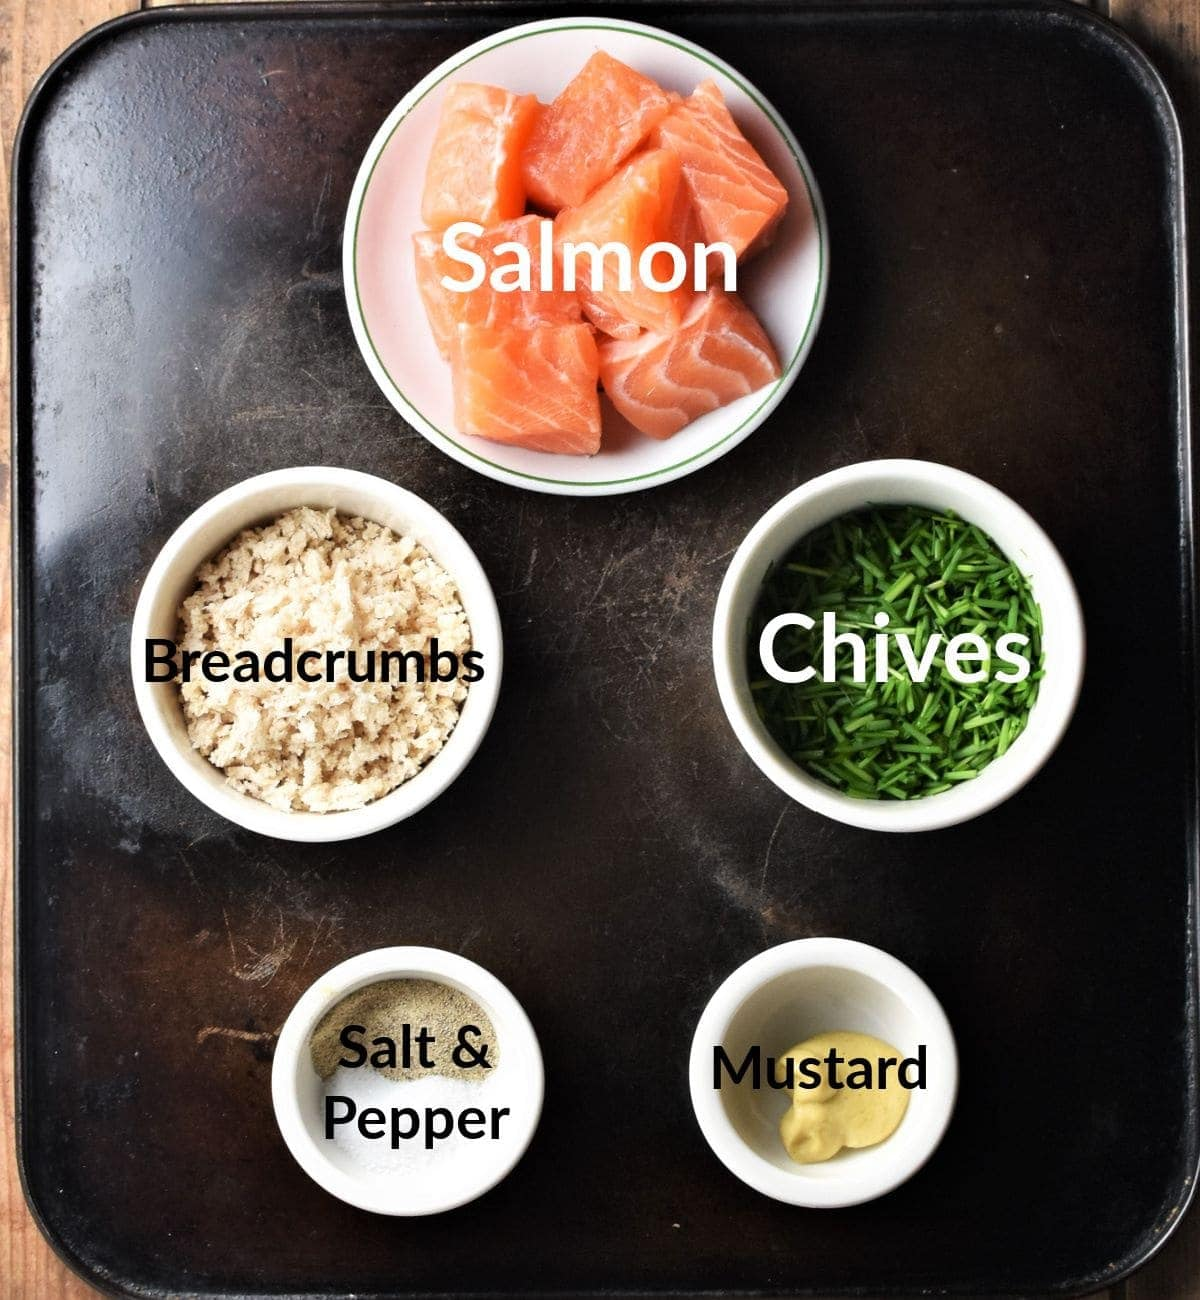 Salmon burger recipe ingredients in individual dishes.